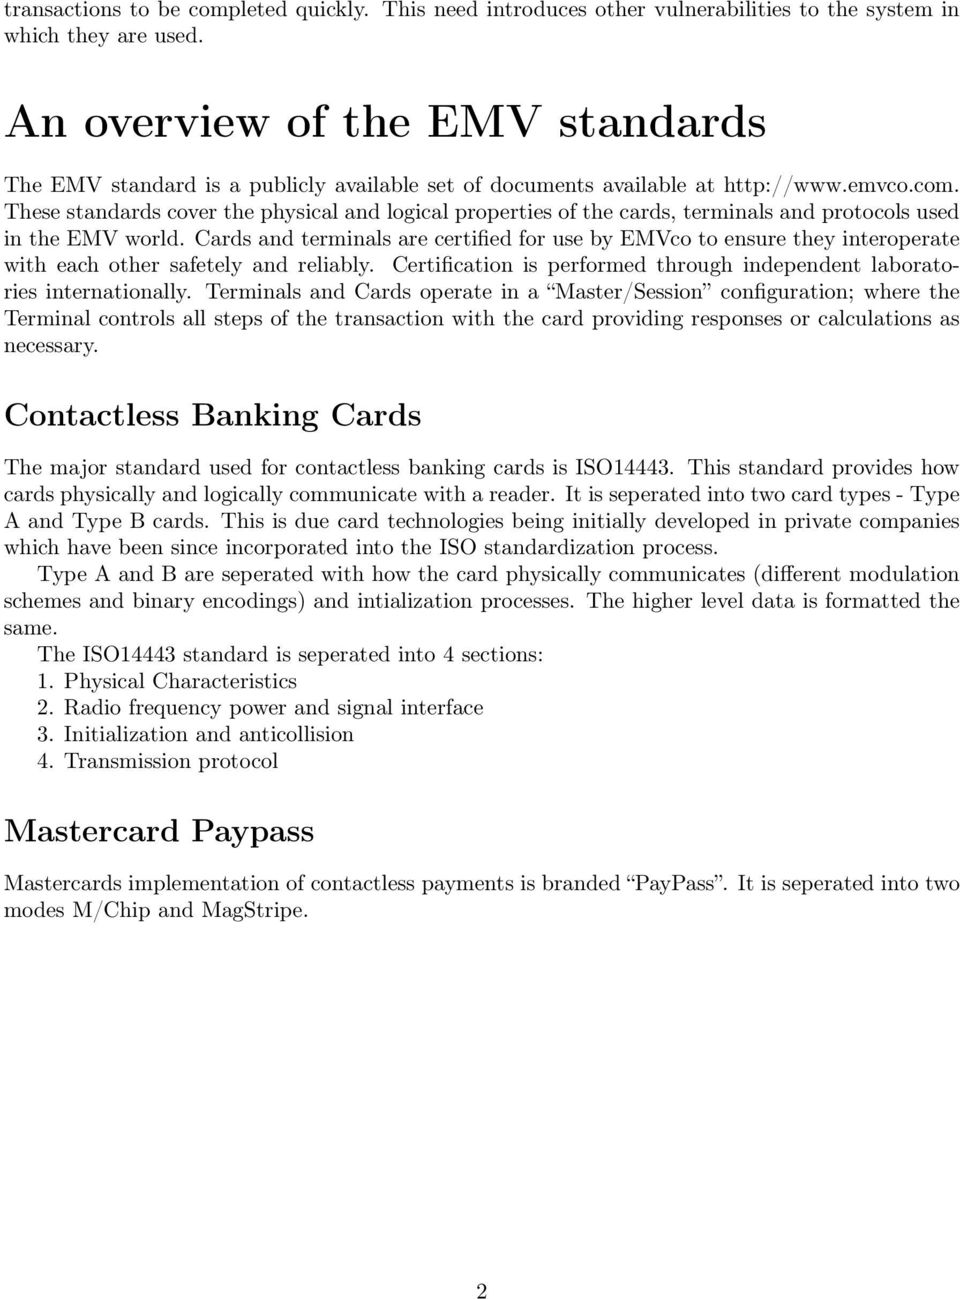 These standards cover the physical and logical properties of the cards, terminals and protocols used in the EMV world.